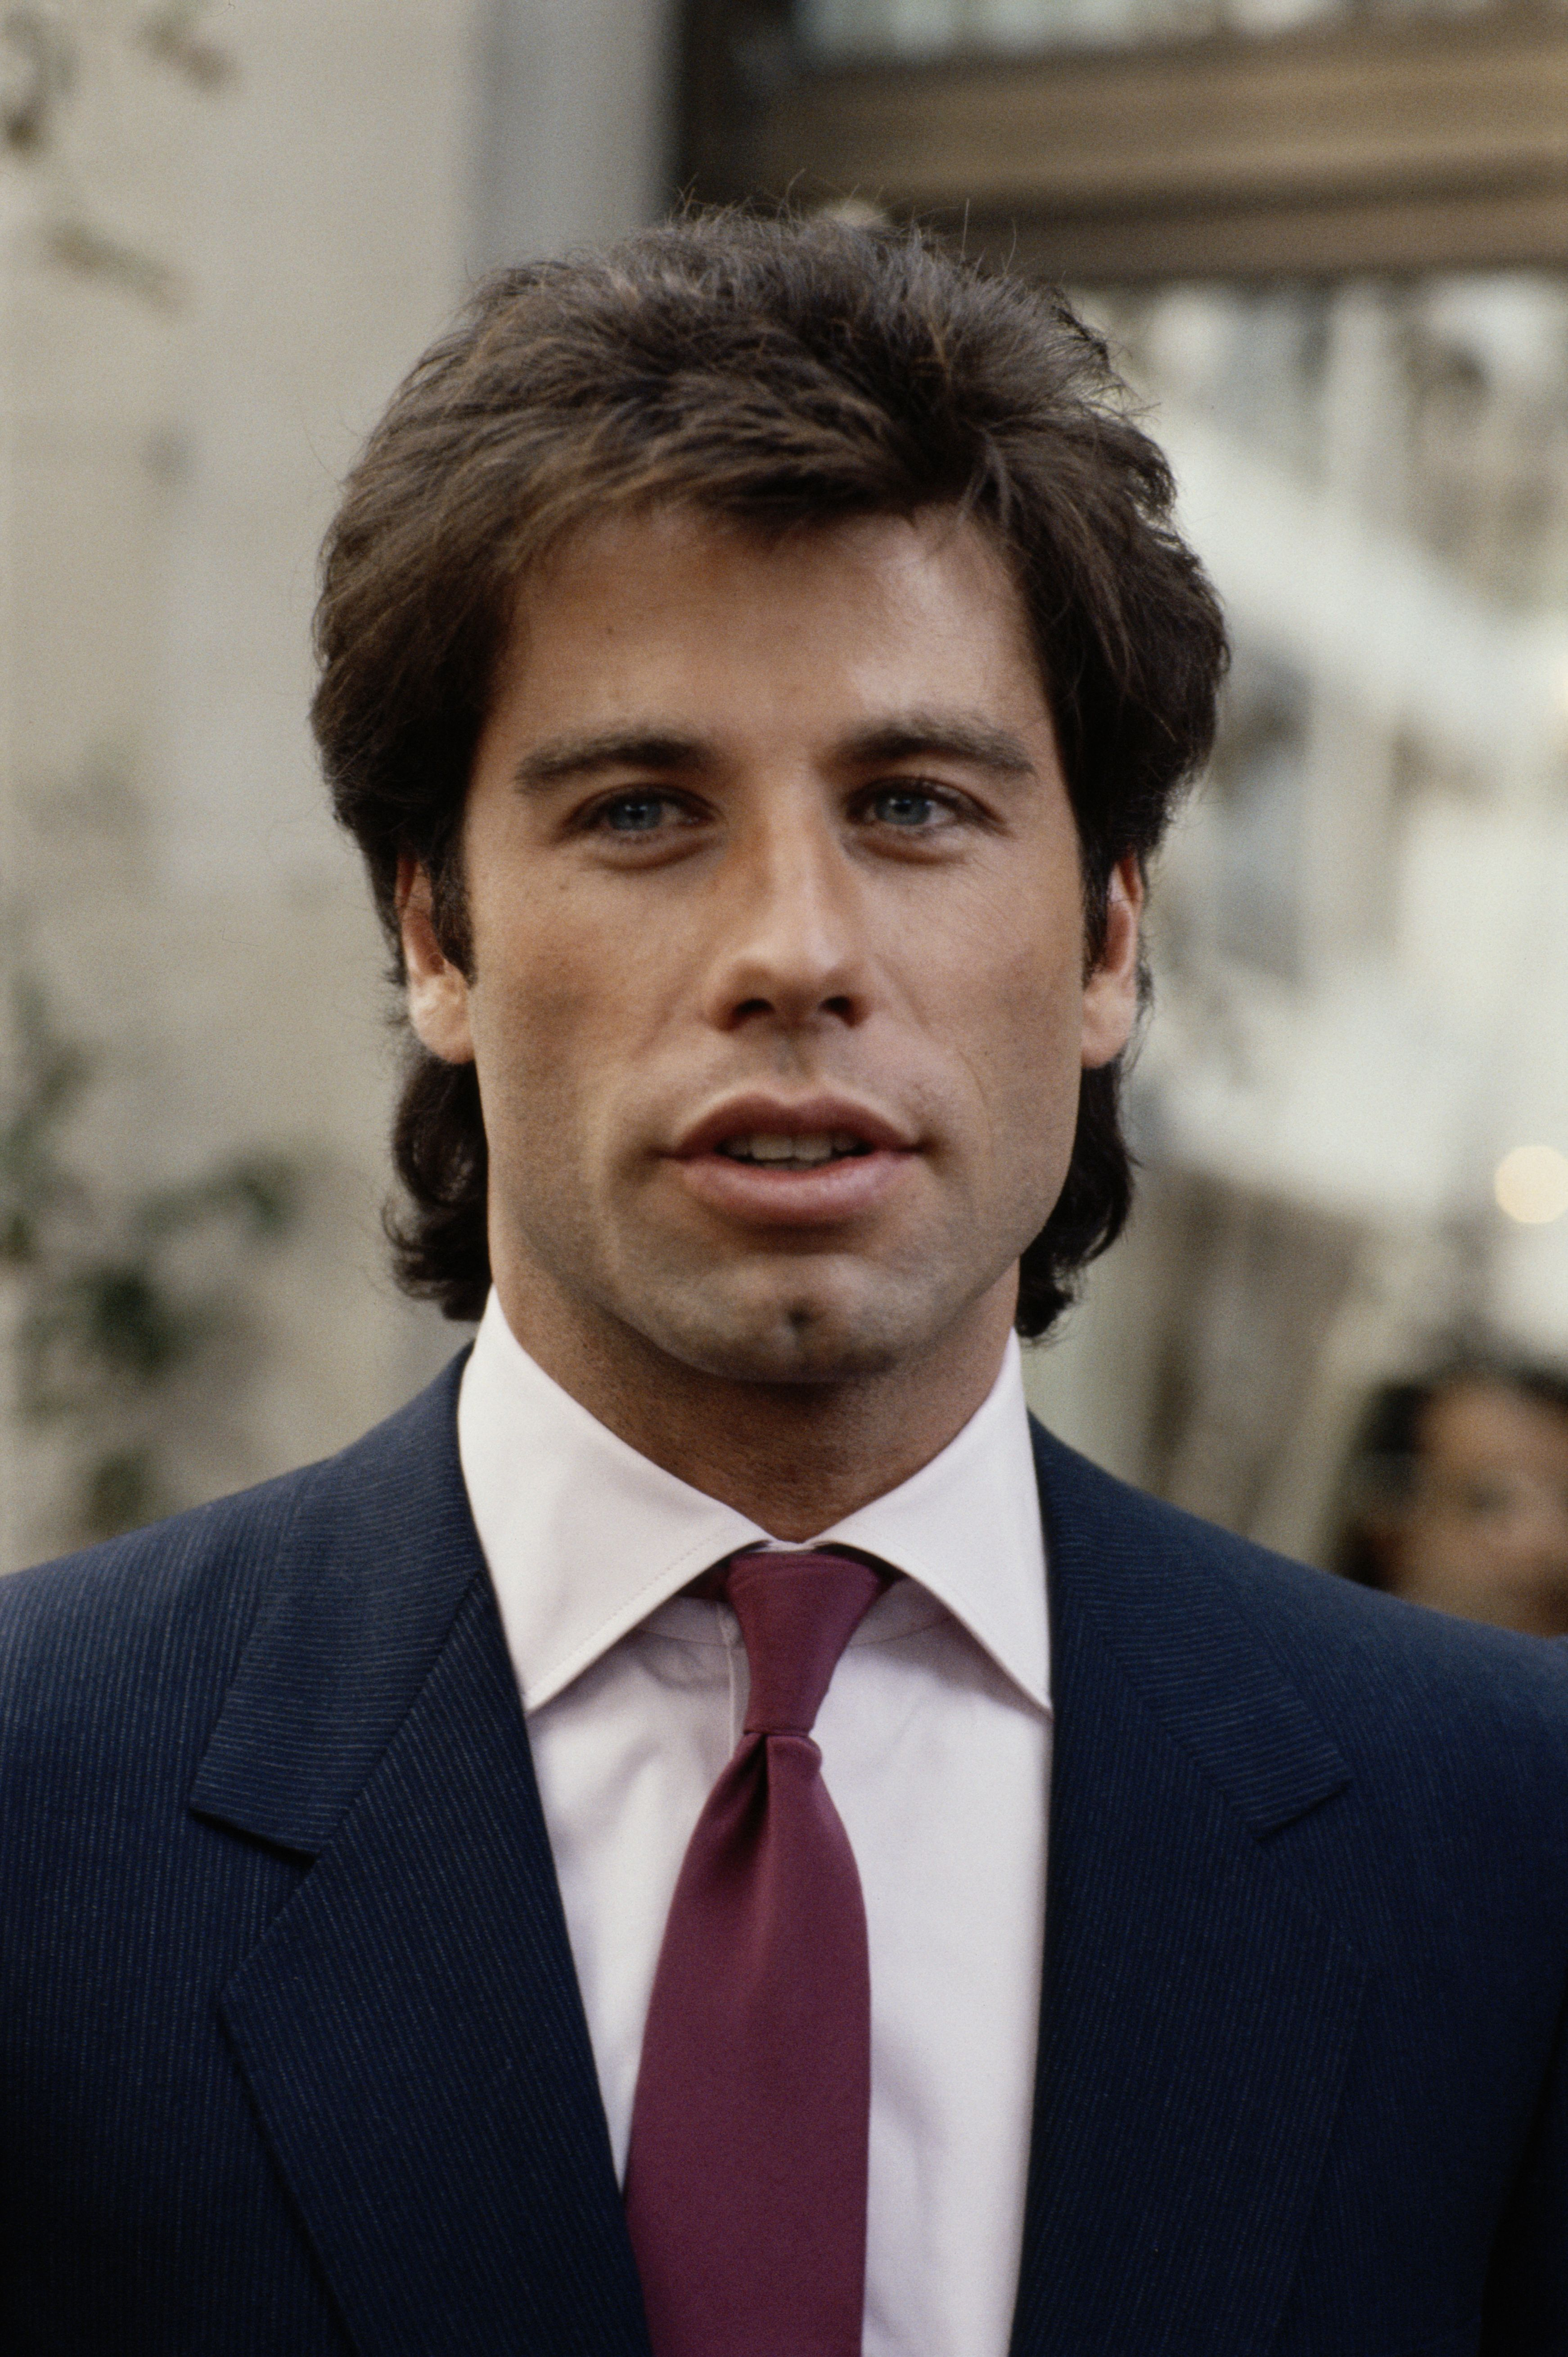 John Travolta - when he was young .